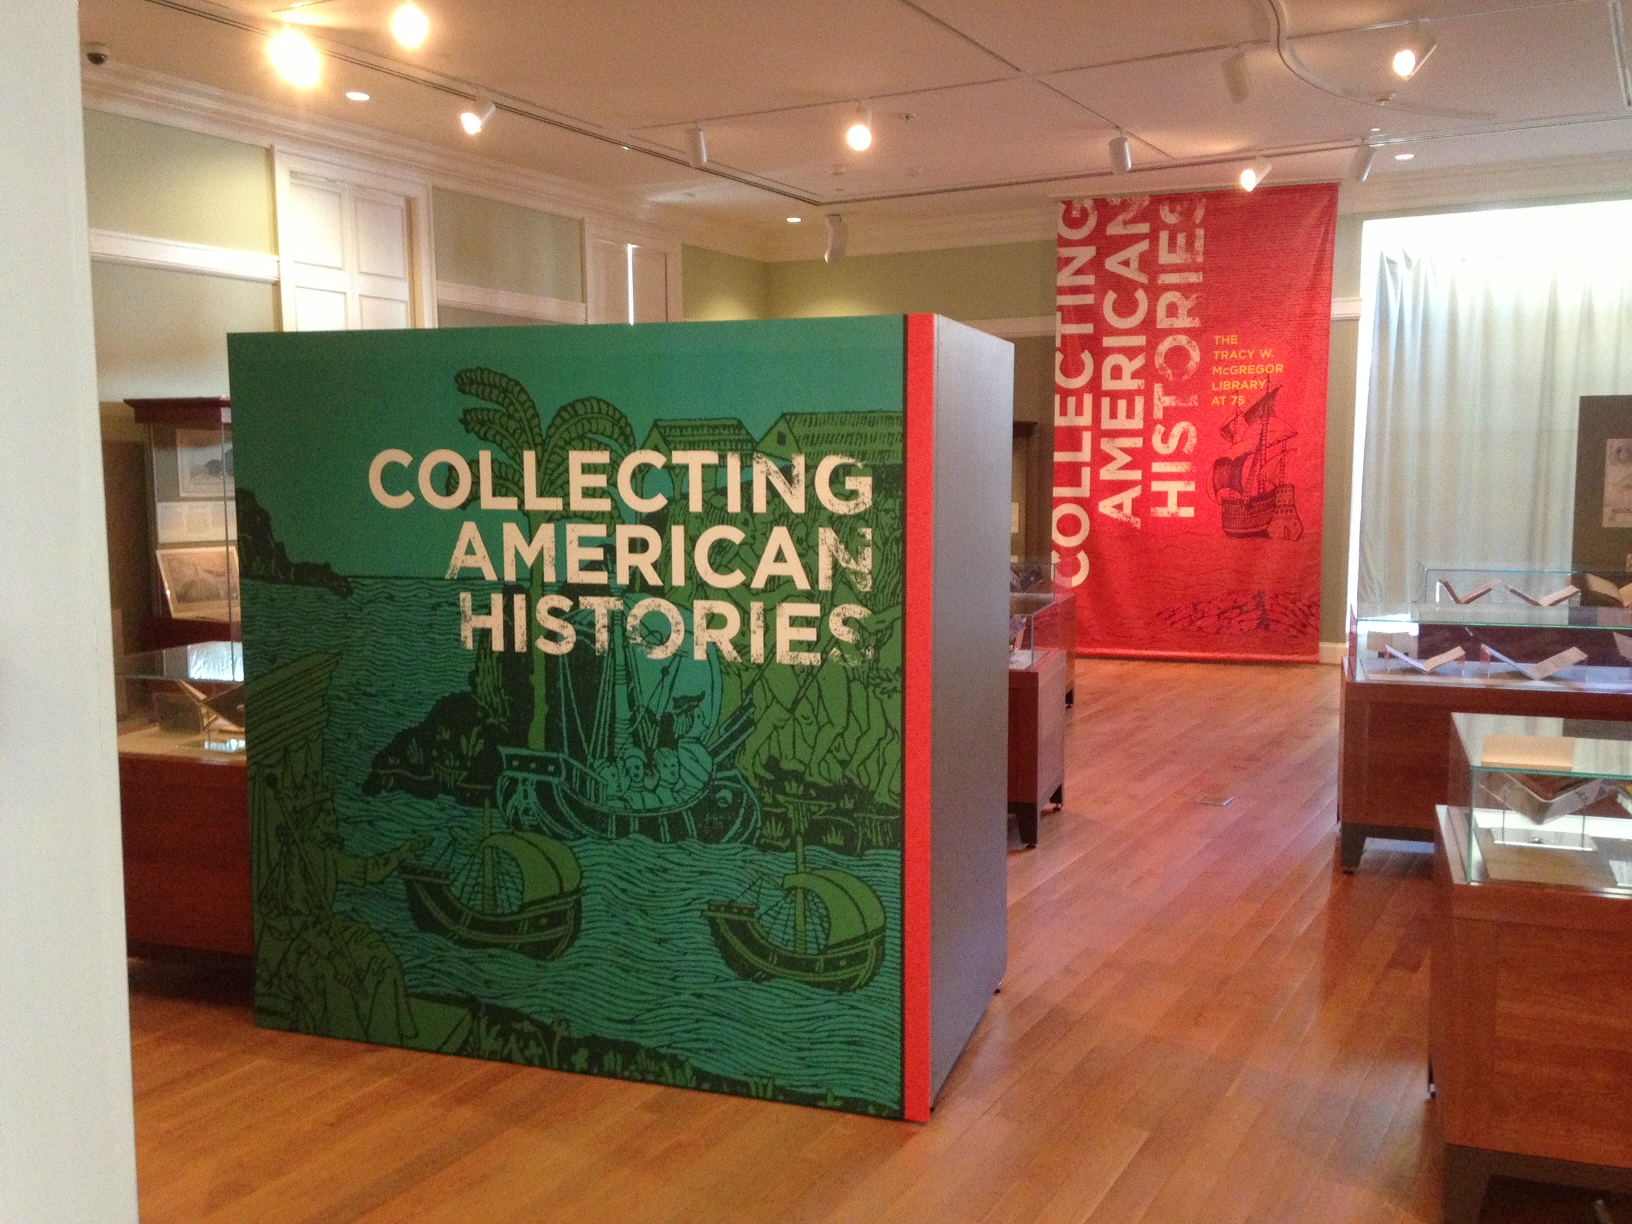 Entering the exhibition, Collecting American Histories: The Tracy W. McGregor Library at 75.